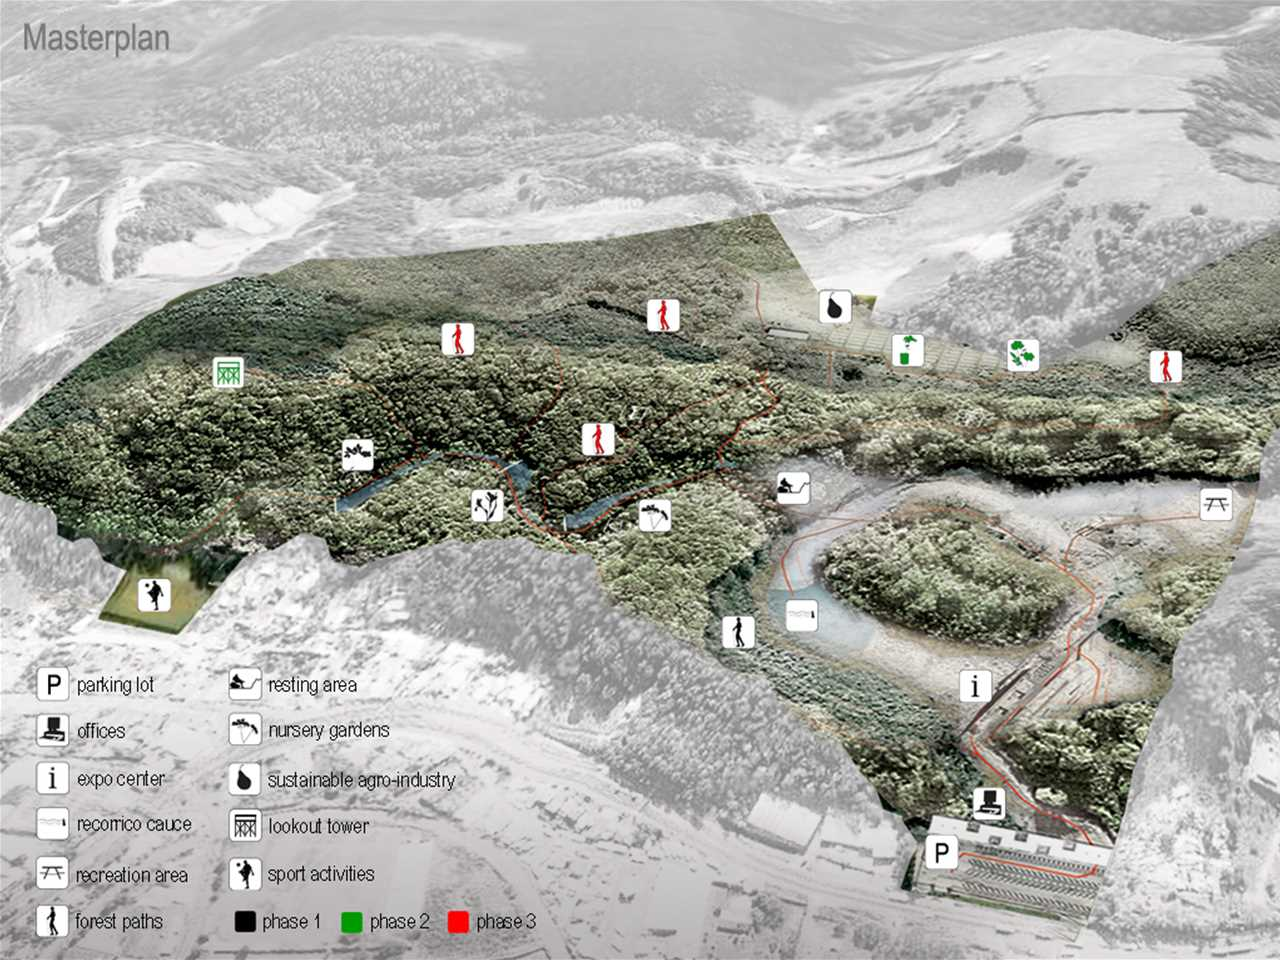 Project entry 2011 - Ecological awareness and recreation reserve, Banderilla, Mexico: Masterplan.